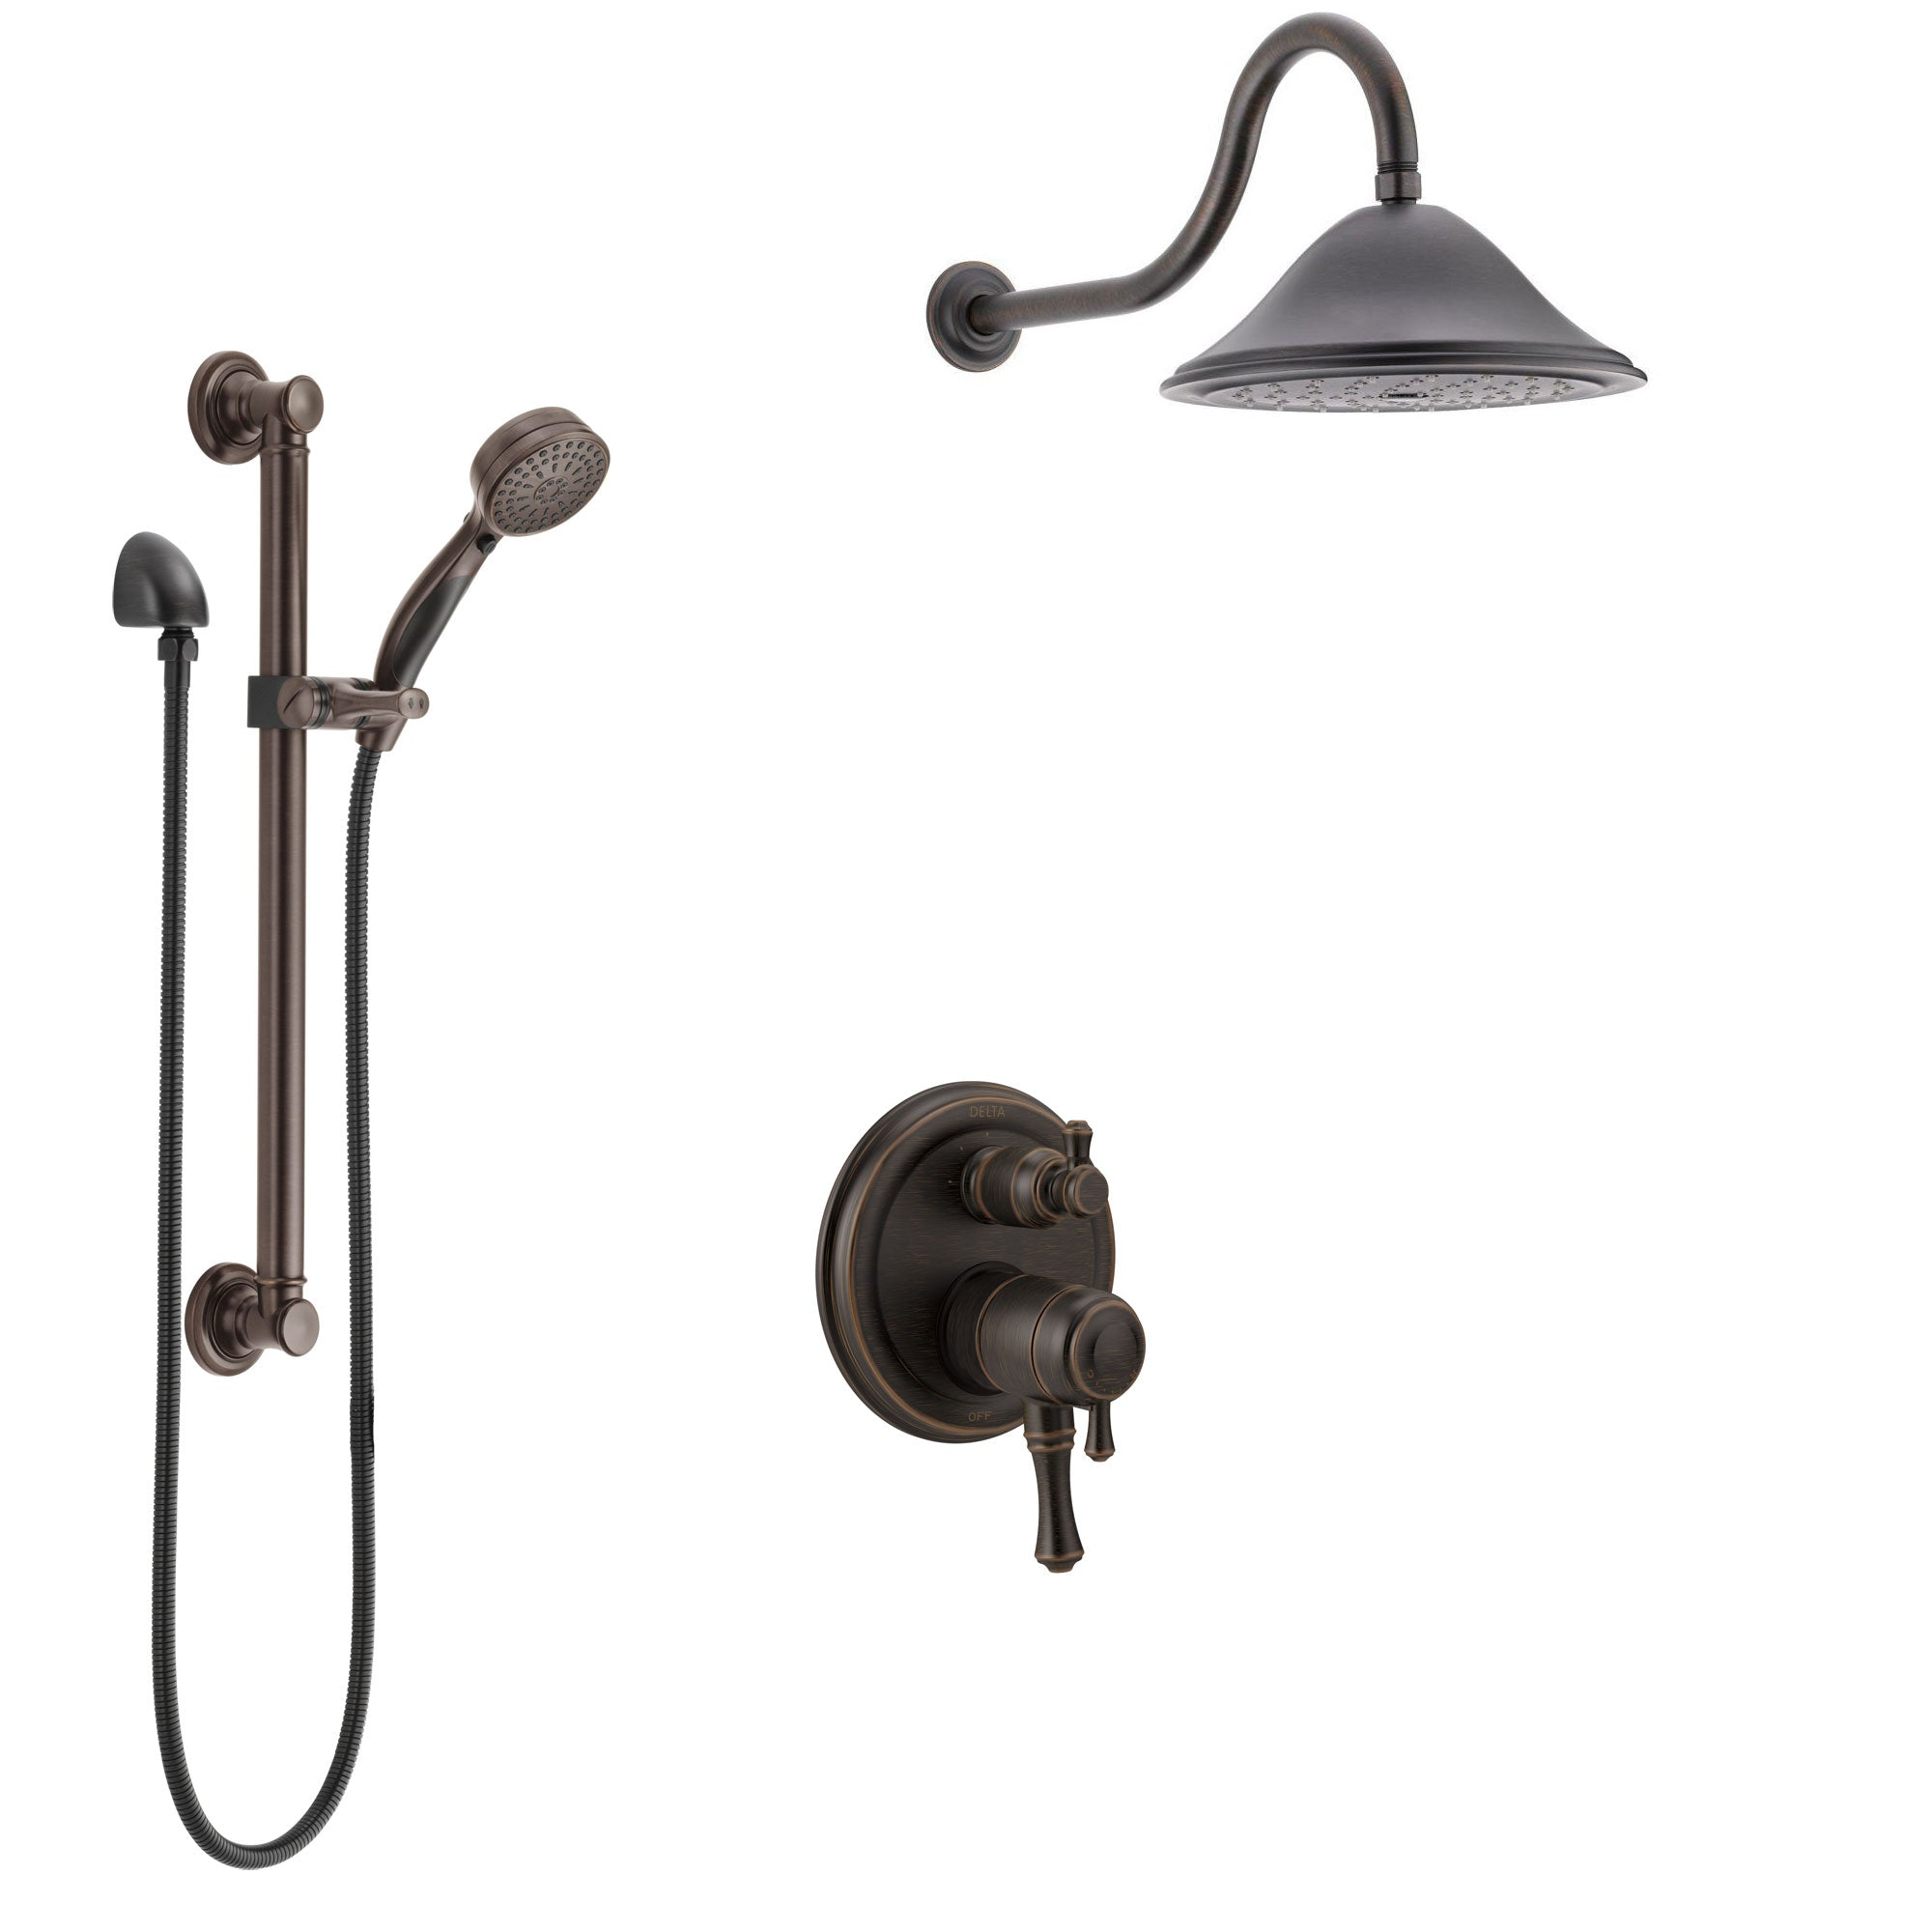 Delta Cassidy Venetian Bronze Shower System with Dual Control Handle, Integrated Diverter, Showerhead, and Hand Shower with Grab Bar SS27897RB12